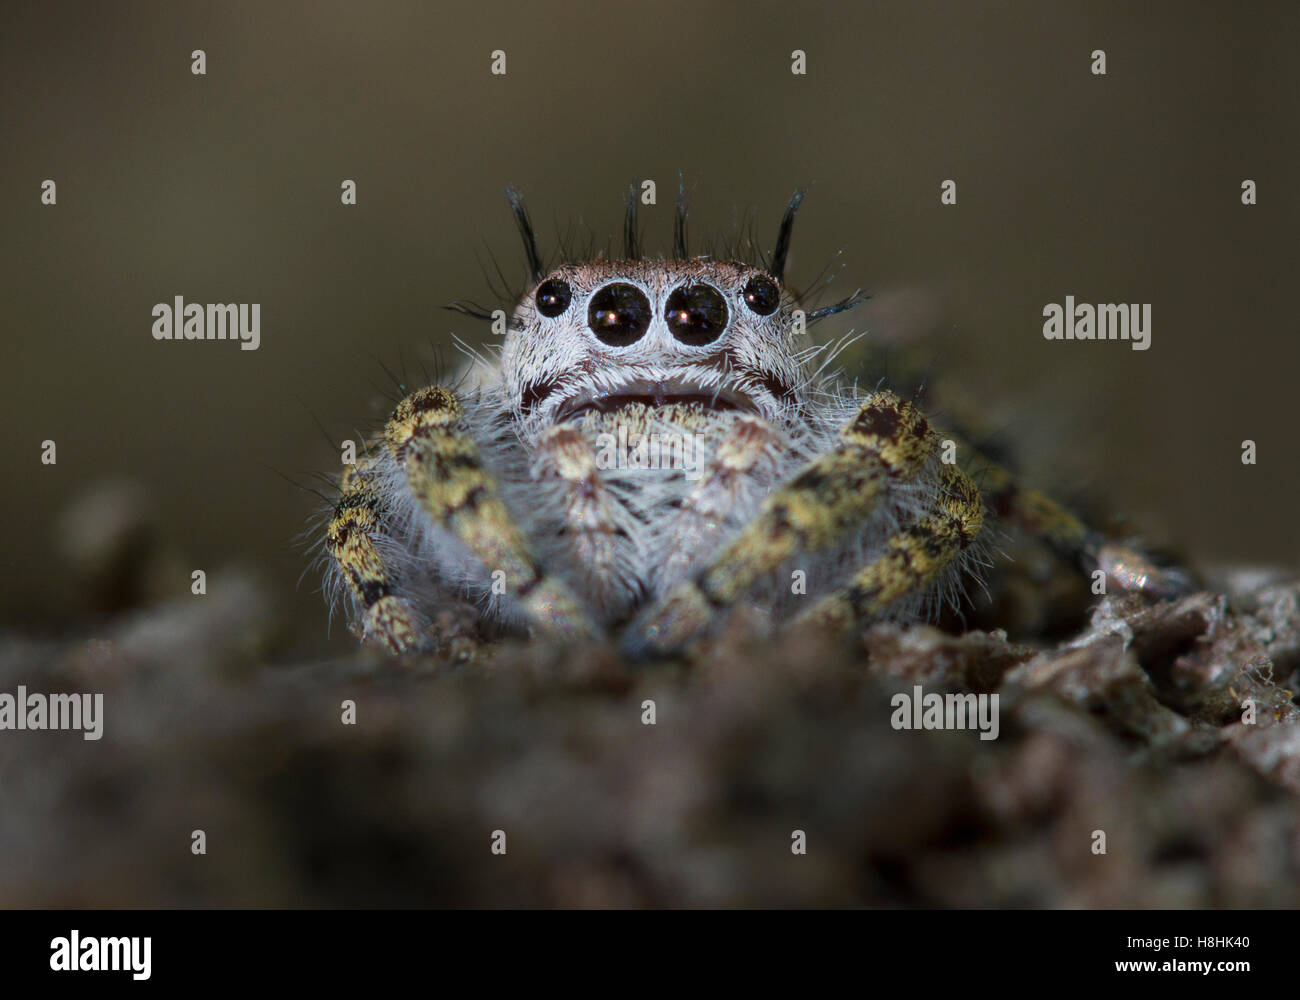 JUMPING SPIDER (Phidippus sp.) Otter Springs, Florida, USA - Stock Image